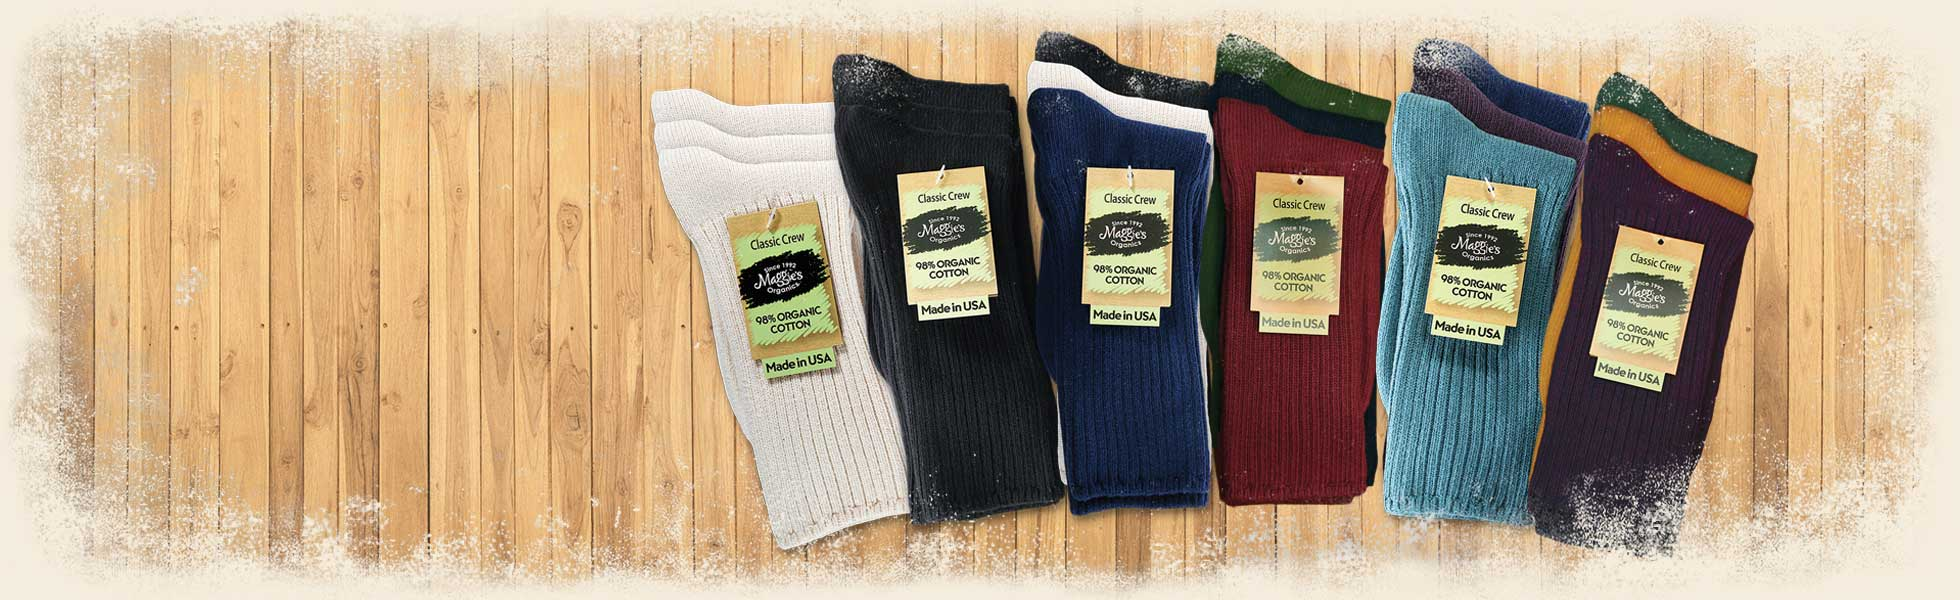 product-apparel-page-bannersocks032918-min.jpg